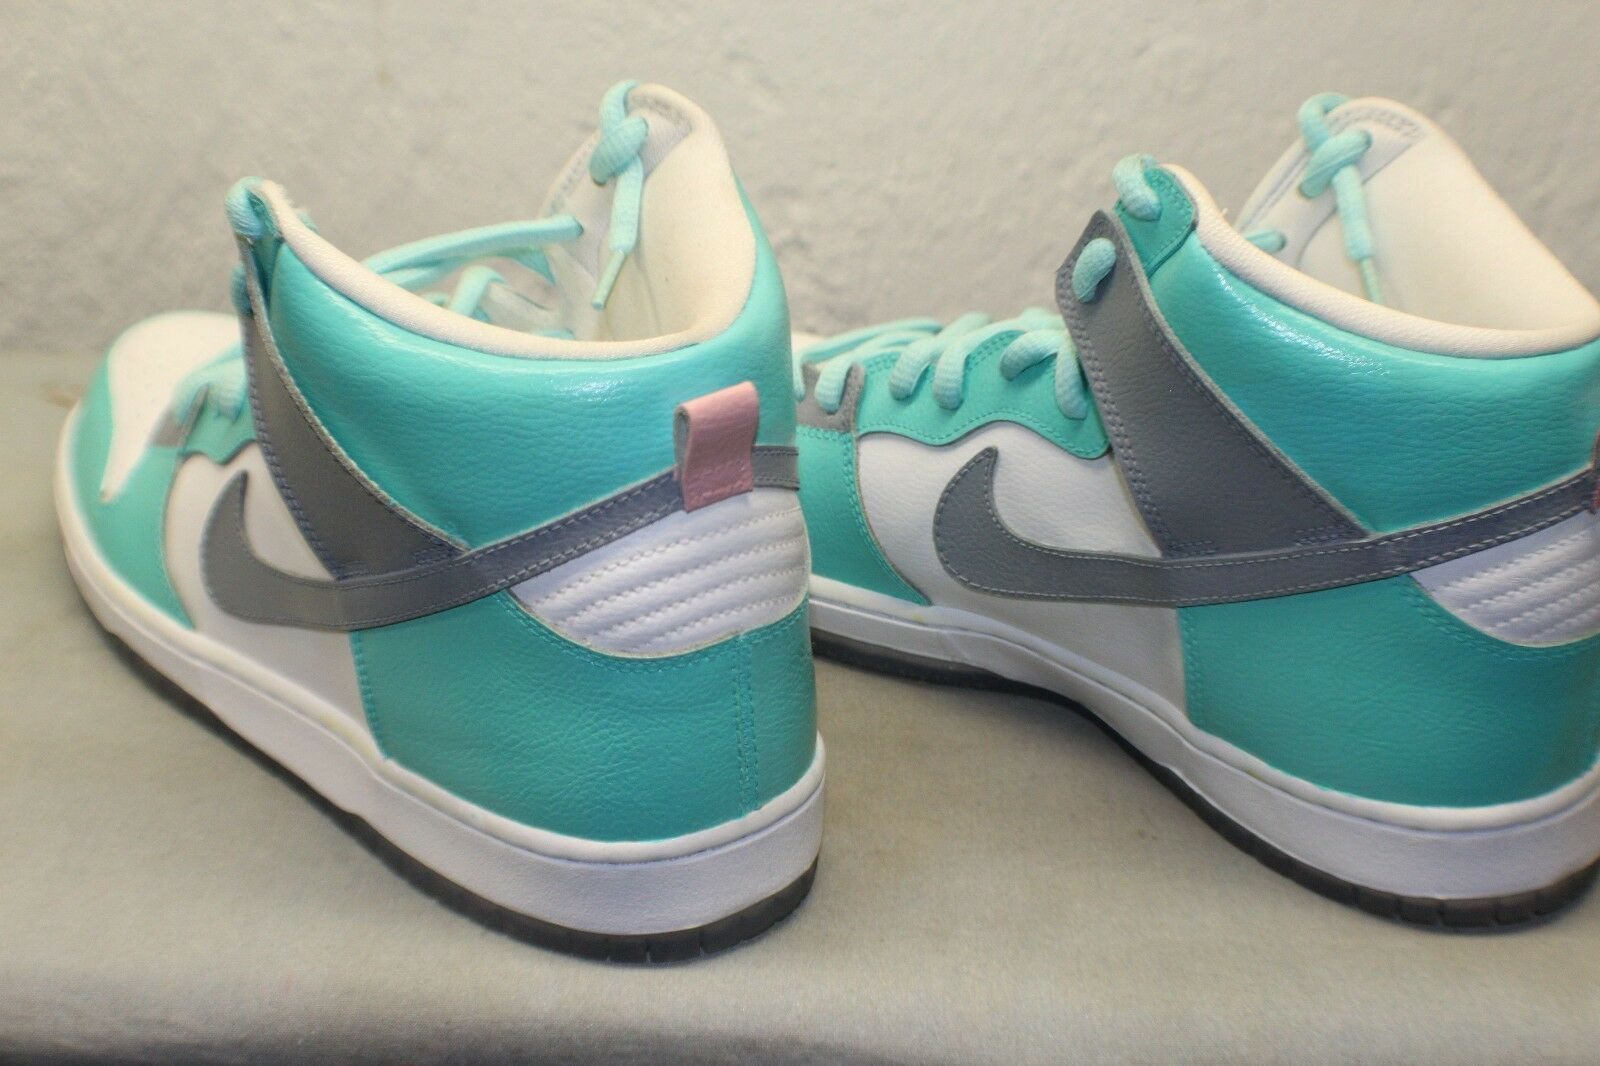 Men custom painted Nike Dunks. Size 12, new comes with extra pair of white laces